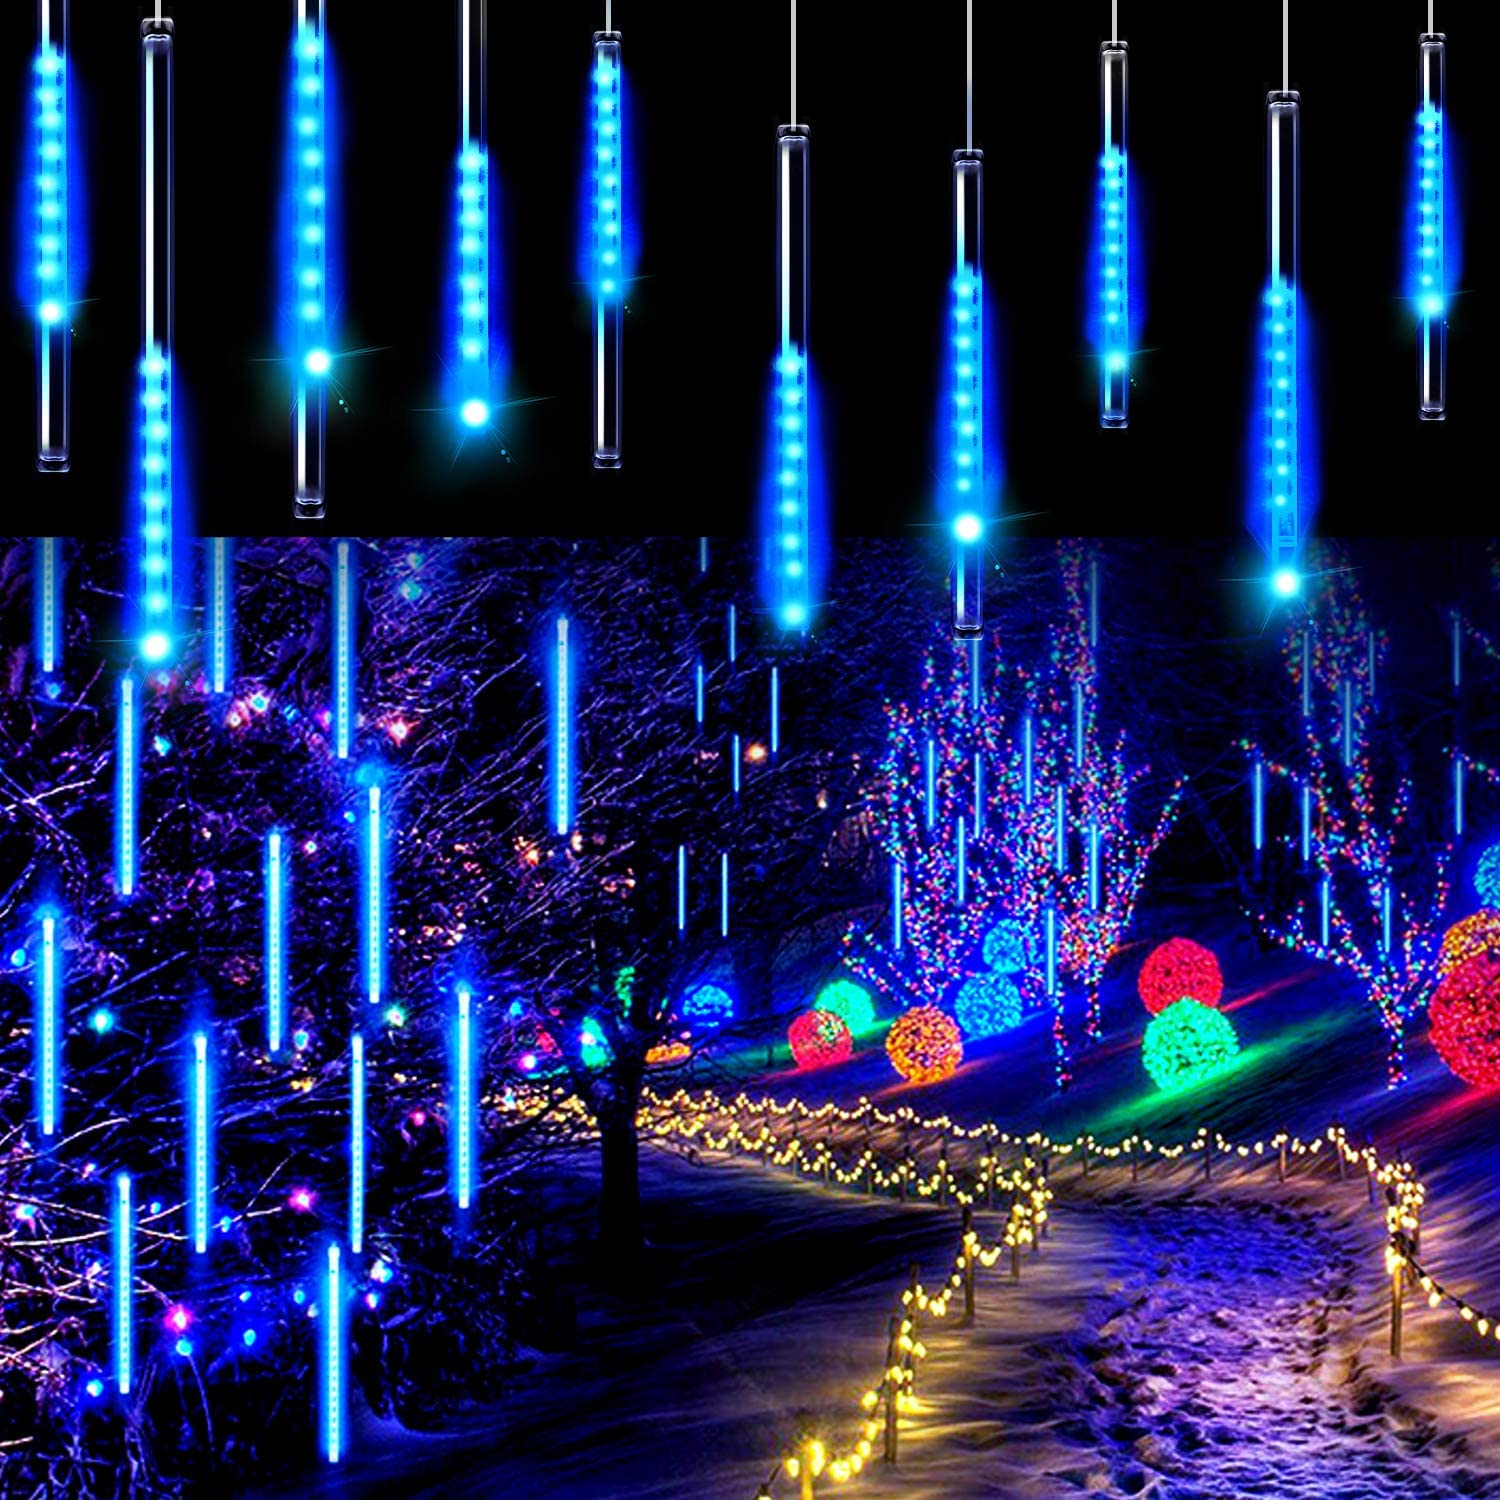 Aluan Christmas Lights Meteor Shower Rain Lights 10 Tube 240 LED 12 Inch Waterproof Plug in Falling Rain Fairy String Lights for Halloween Christmas Holiday Party Home Patio Outdoor Decoration, Blue